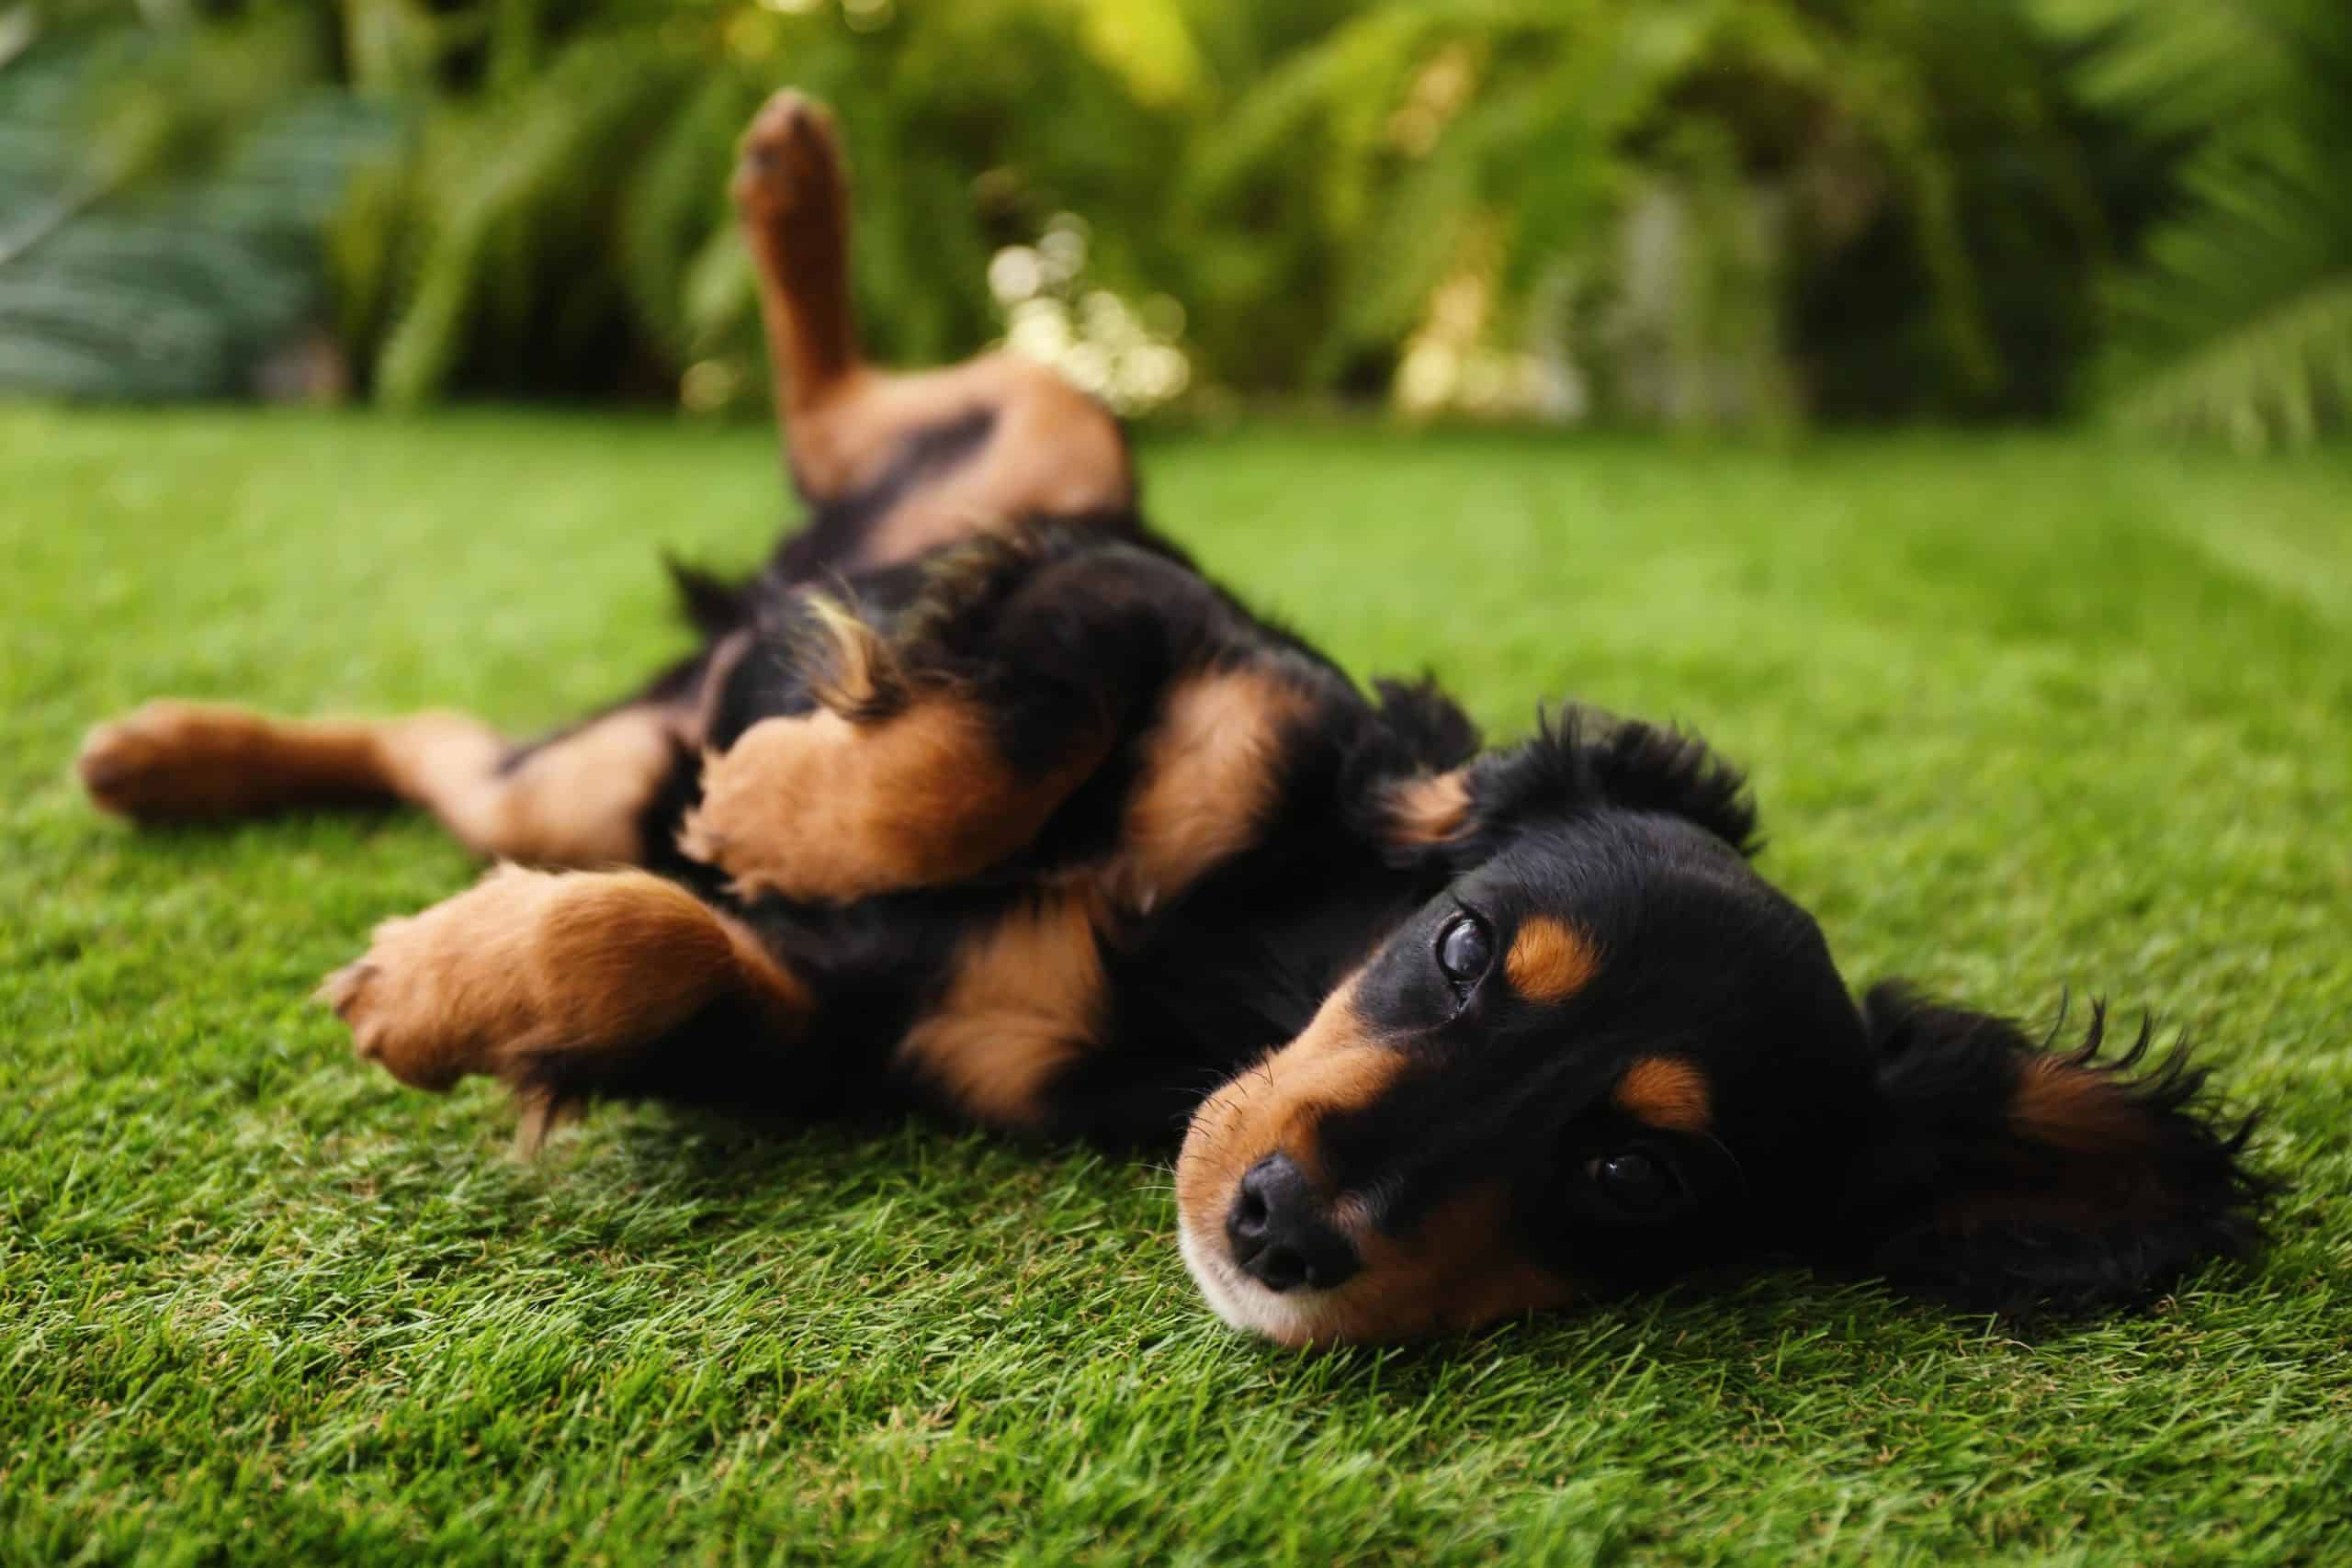 Dachshund rolls on grass. Exposure to weed killers makes dogs vulnerable to everything from nausea, dehydration, and breathing problems to bladder or thyroid cancer.